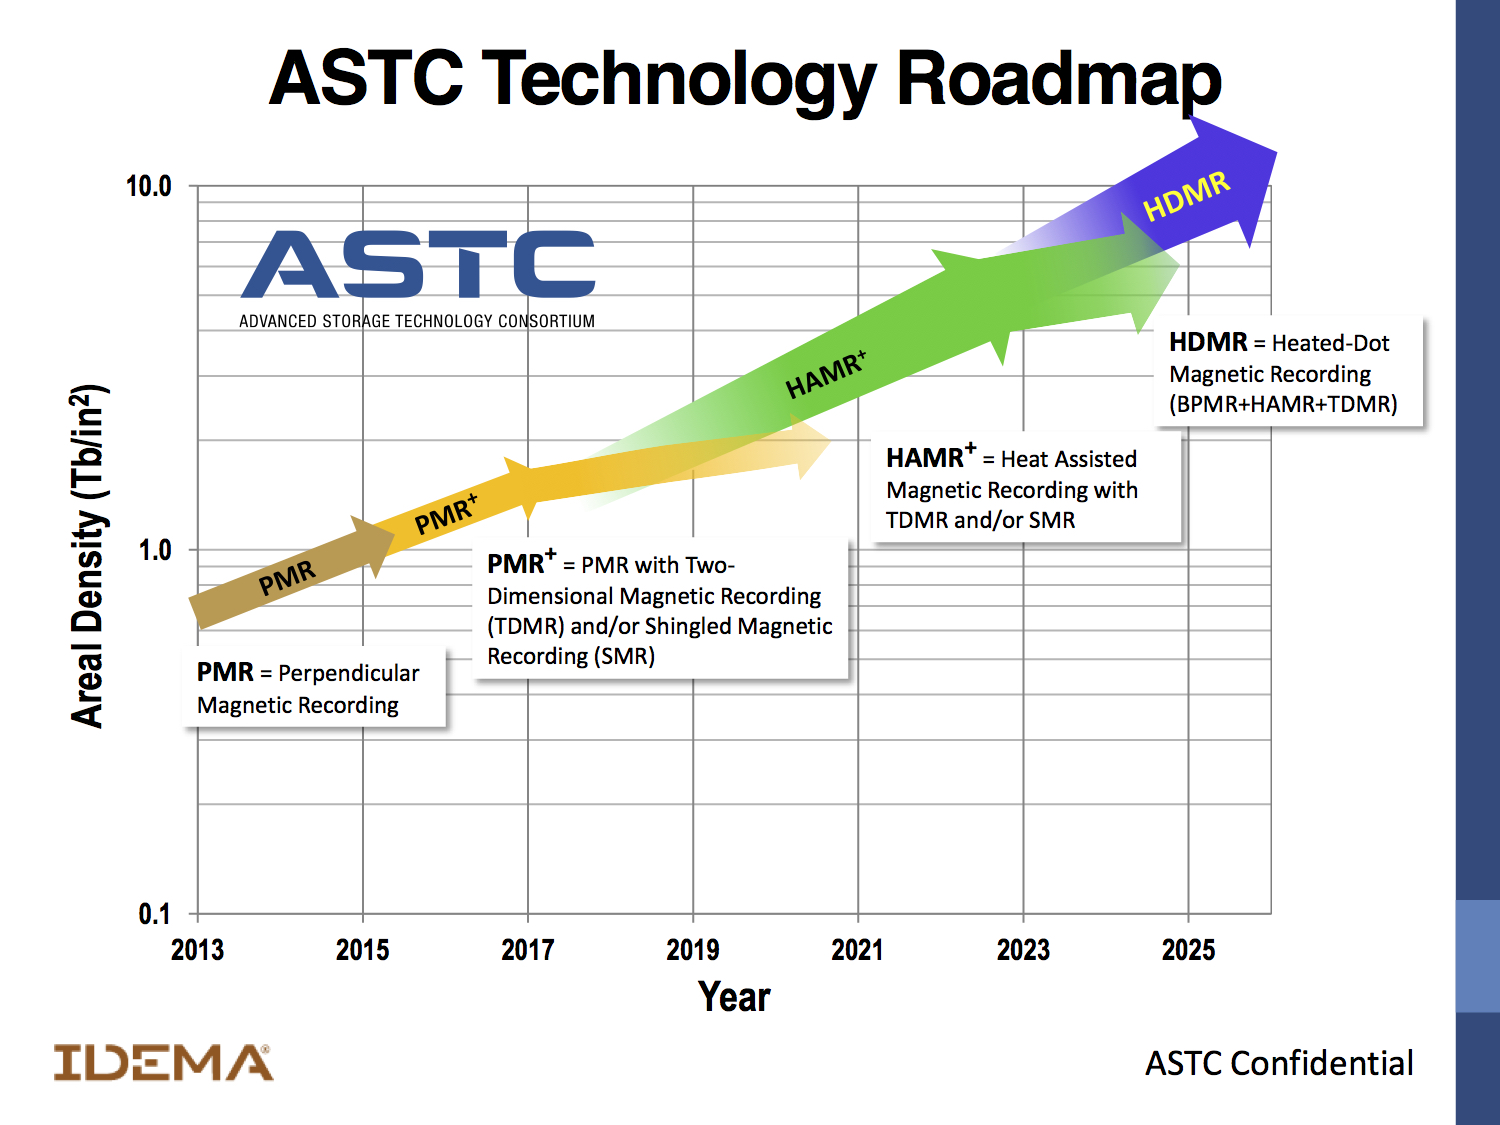 2016 ASTC Technology Roadmap